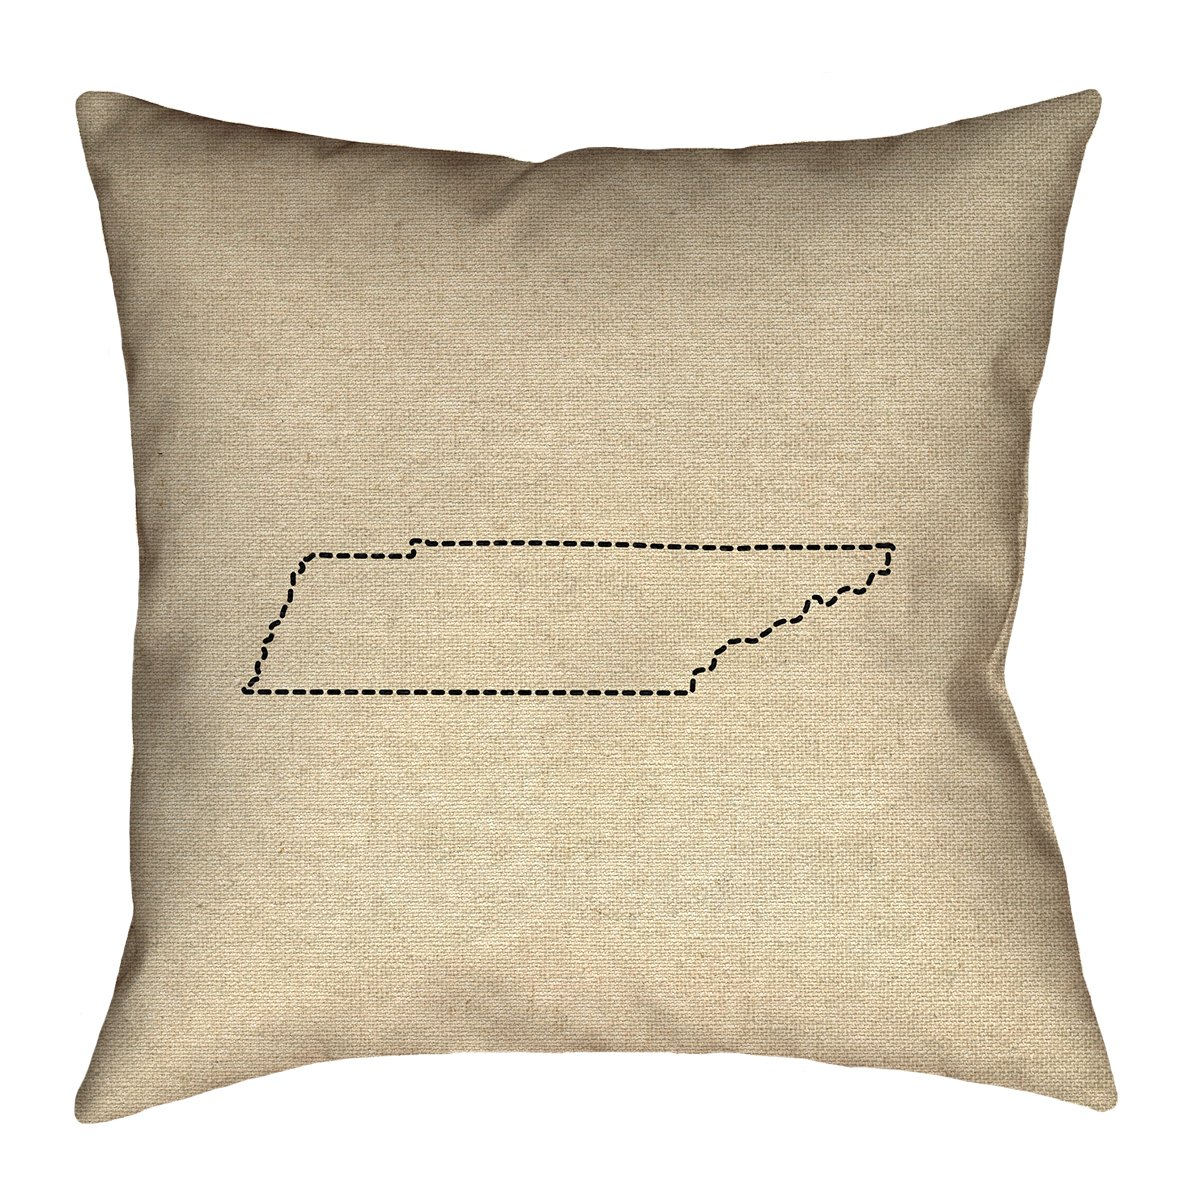 ArtVerse Katelyn Smith 40' x 40' Floor Double Sided Print with Concealed Zipper & Insert Tennessee Outline Pillow